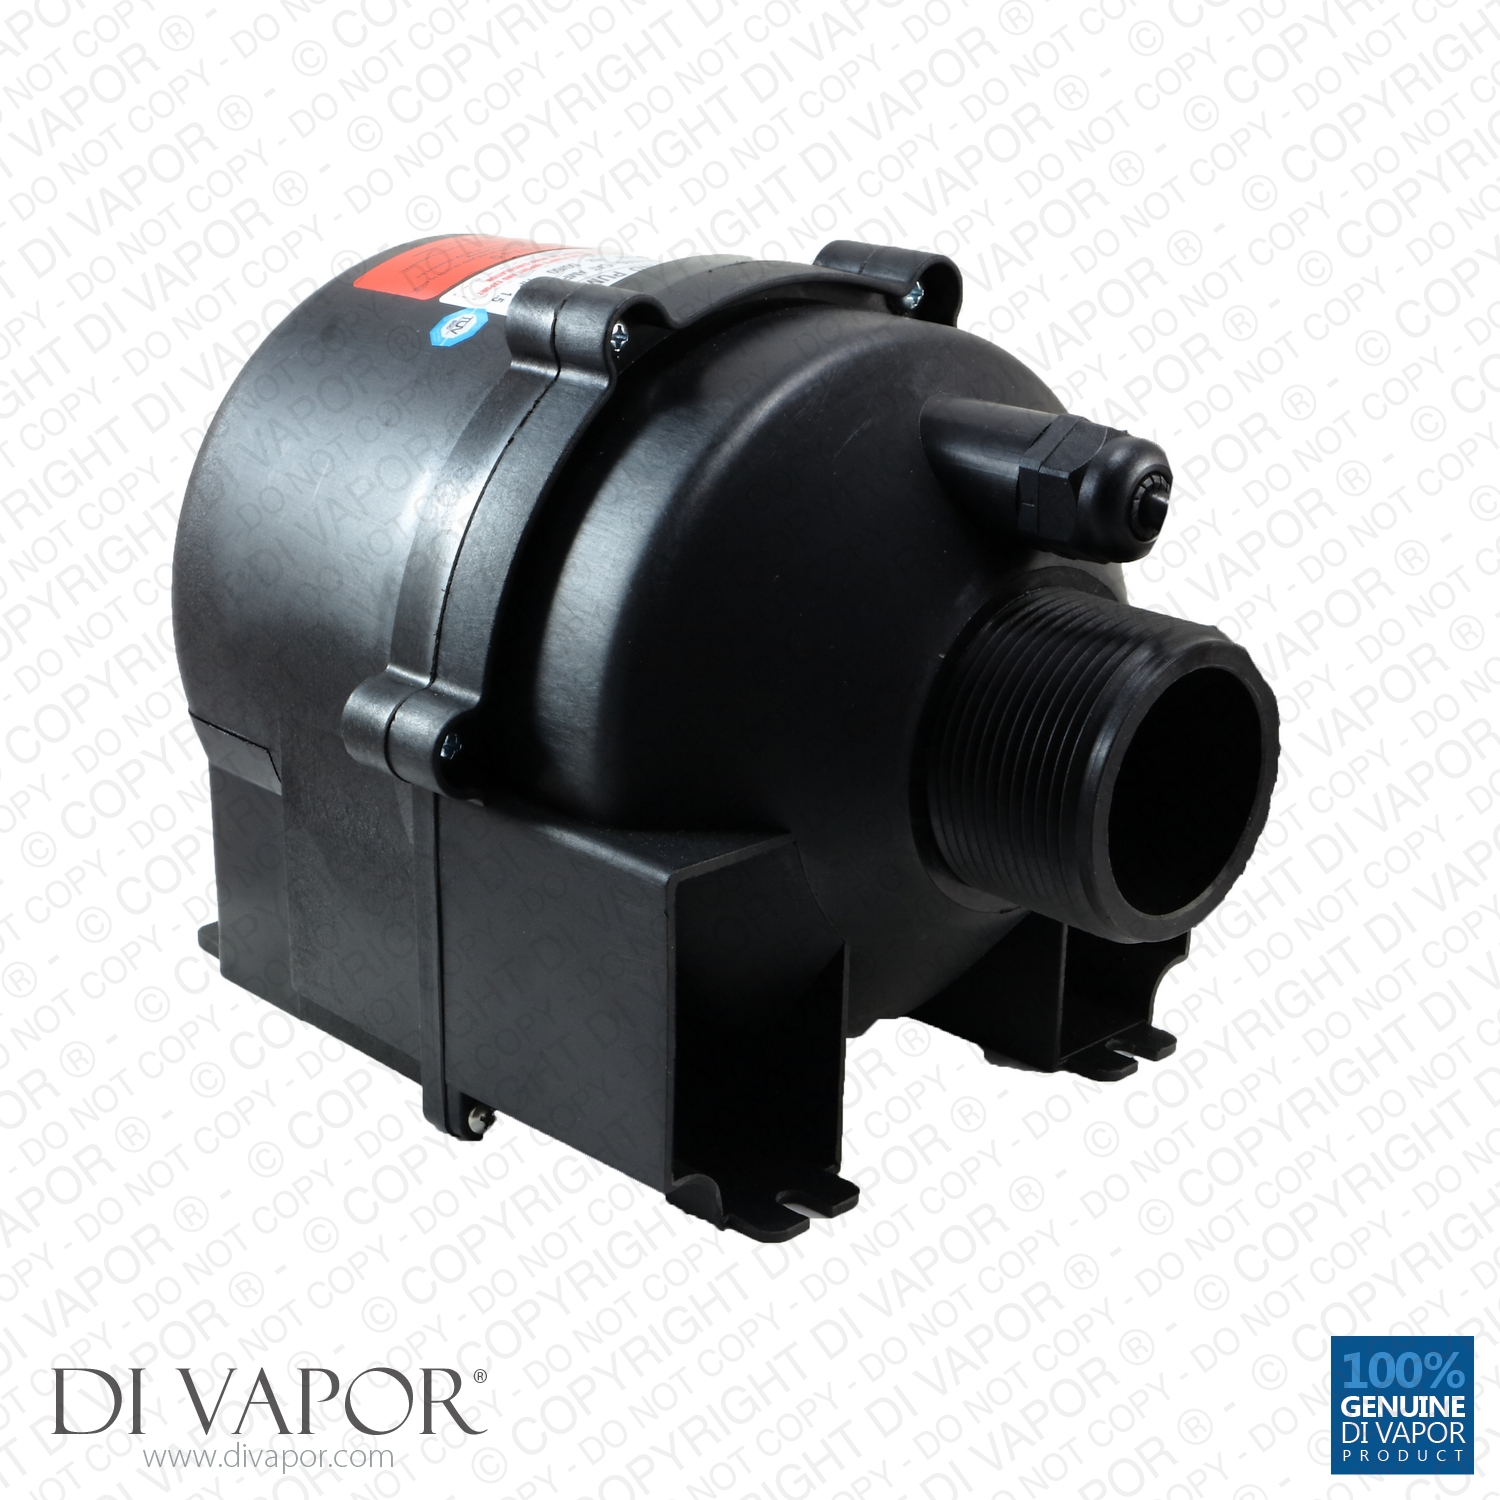 Hot Tub Blower : Dxd pump hp air blower kw v hz hot tub